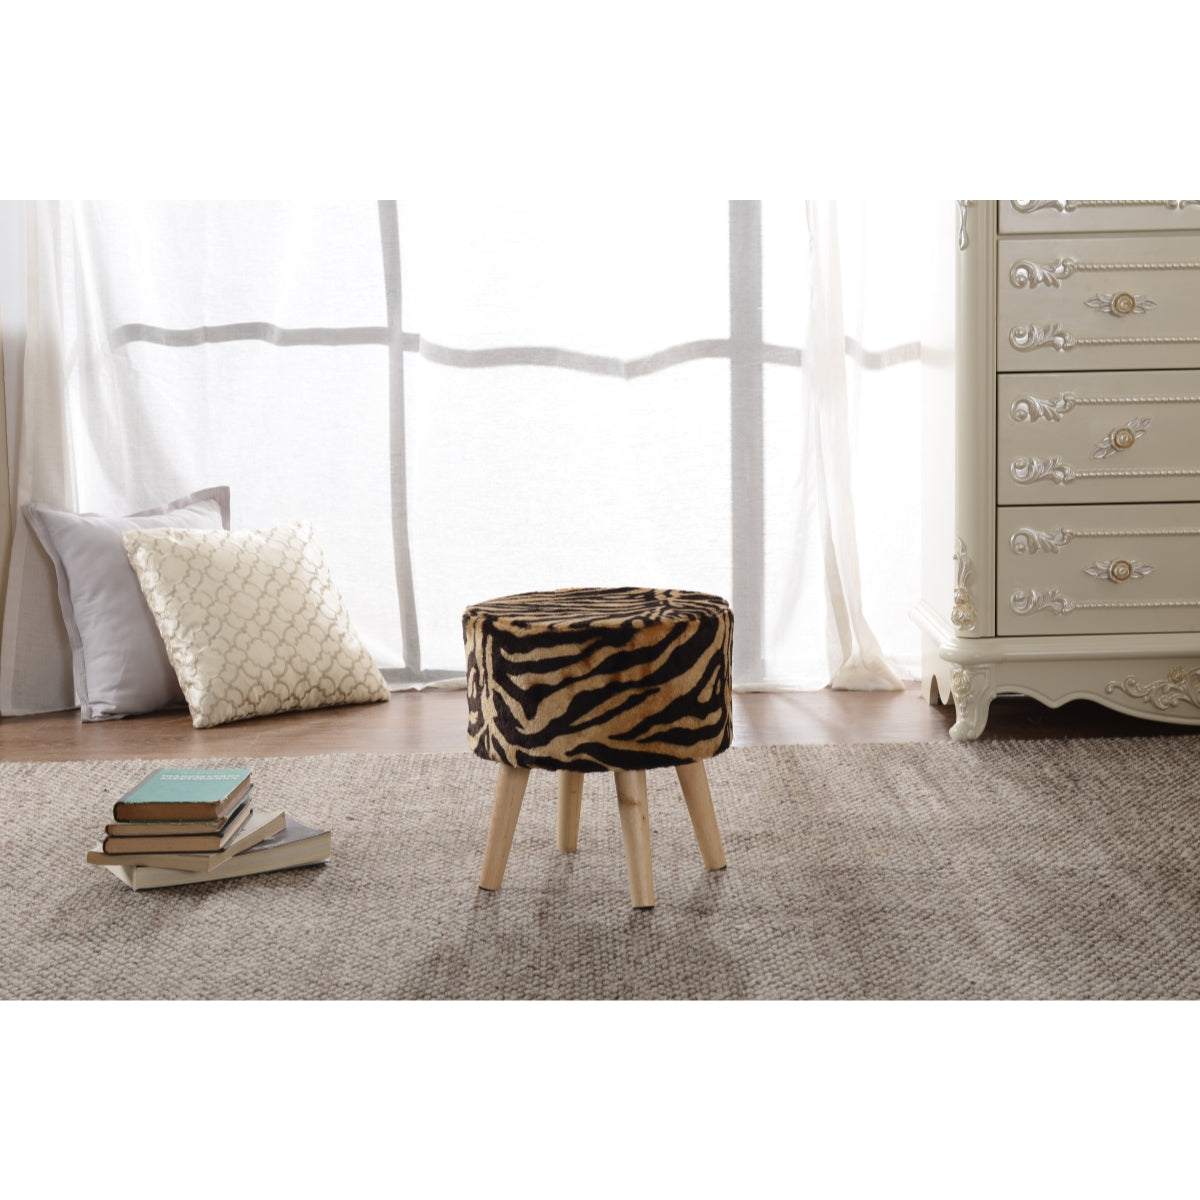 Enjoyable Cheer Collection Faux Fur Wood Leg Stool With Tiger Stripes Cjindustries Chair Design For Home Cjindustriesco